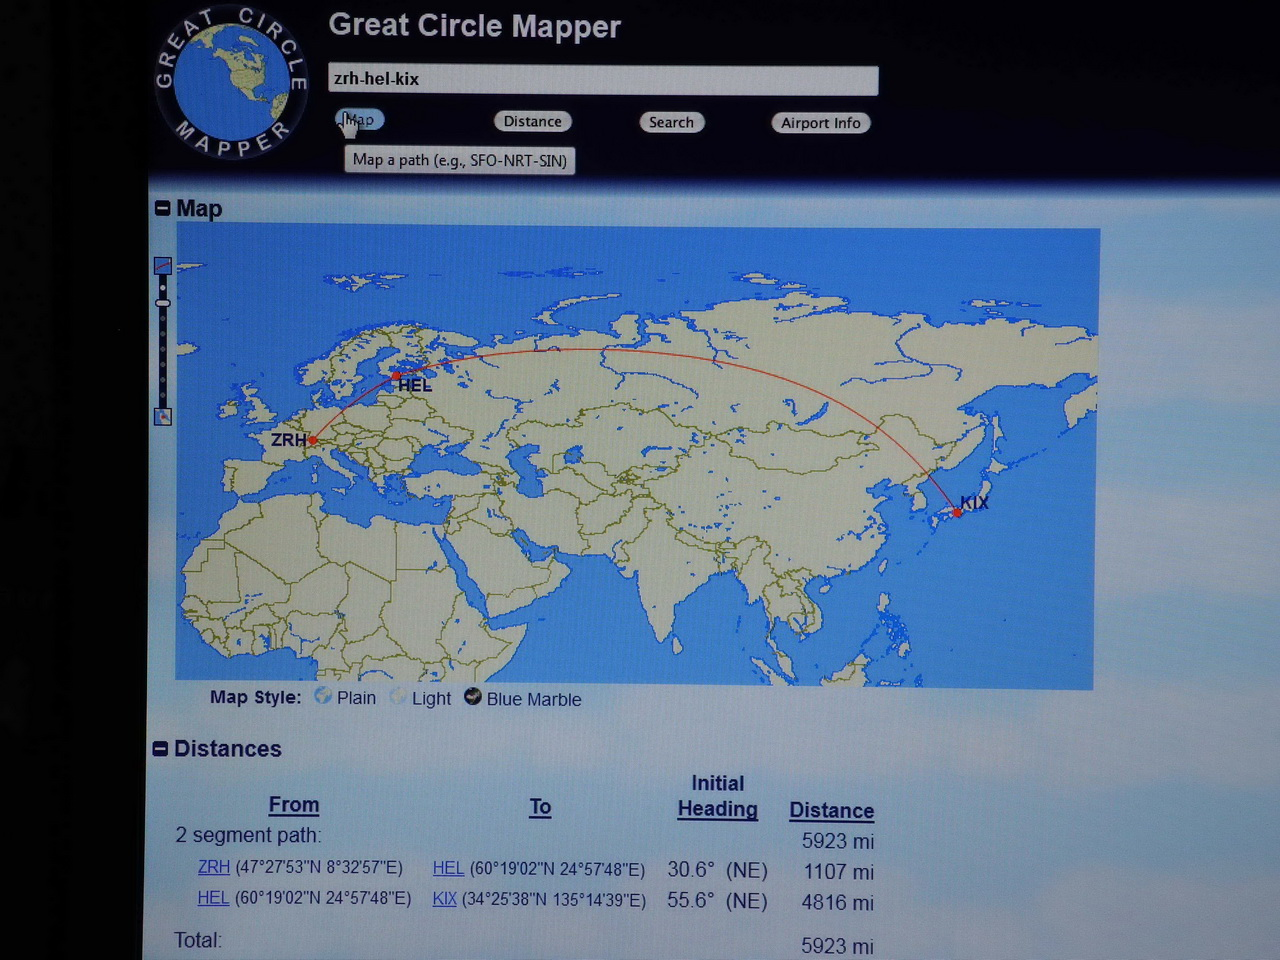 The great circle mapper / http://www.gcmap.com/